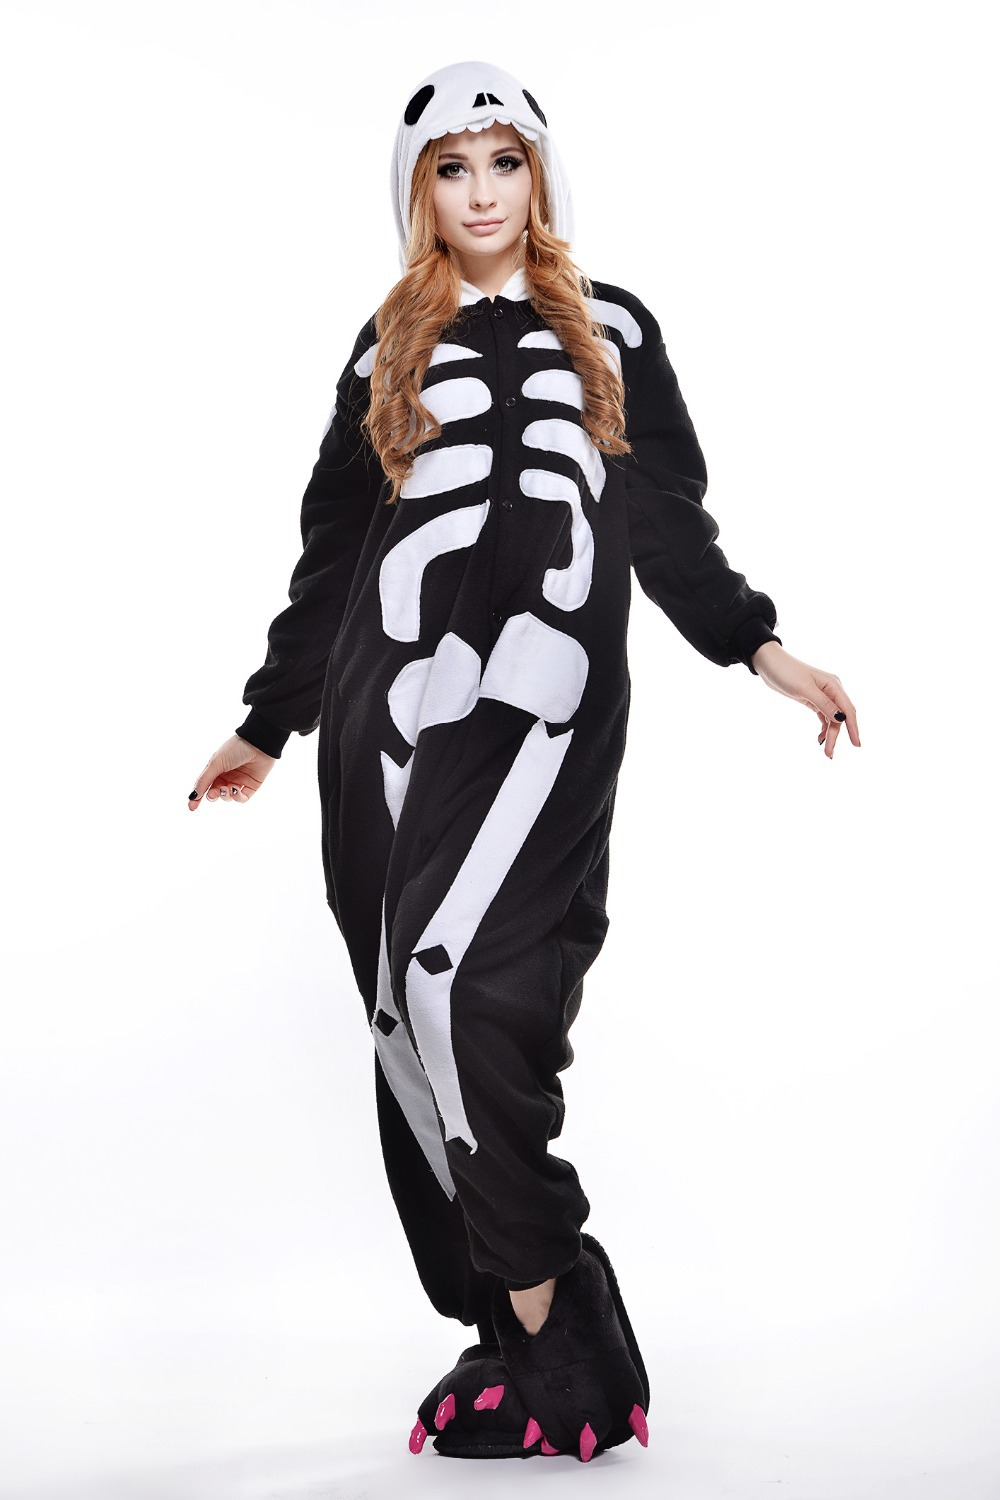 Shop Hot Topic for the best selection of costumes for adults this Halloween season. Browse a variety of funny and unique Halloween costumes to find the right one for you. Go for a classic Halloween horror costume and scare all the kids that come to your door.4/5.